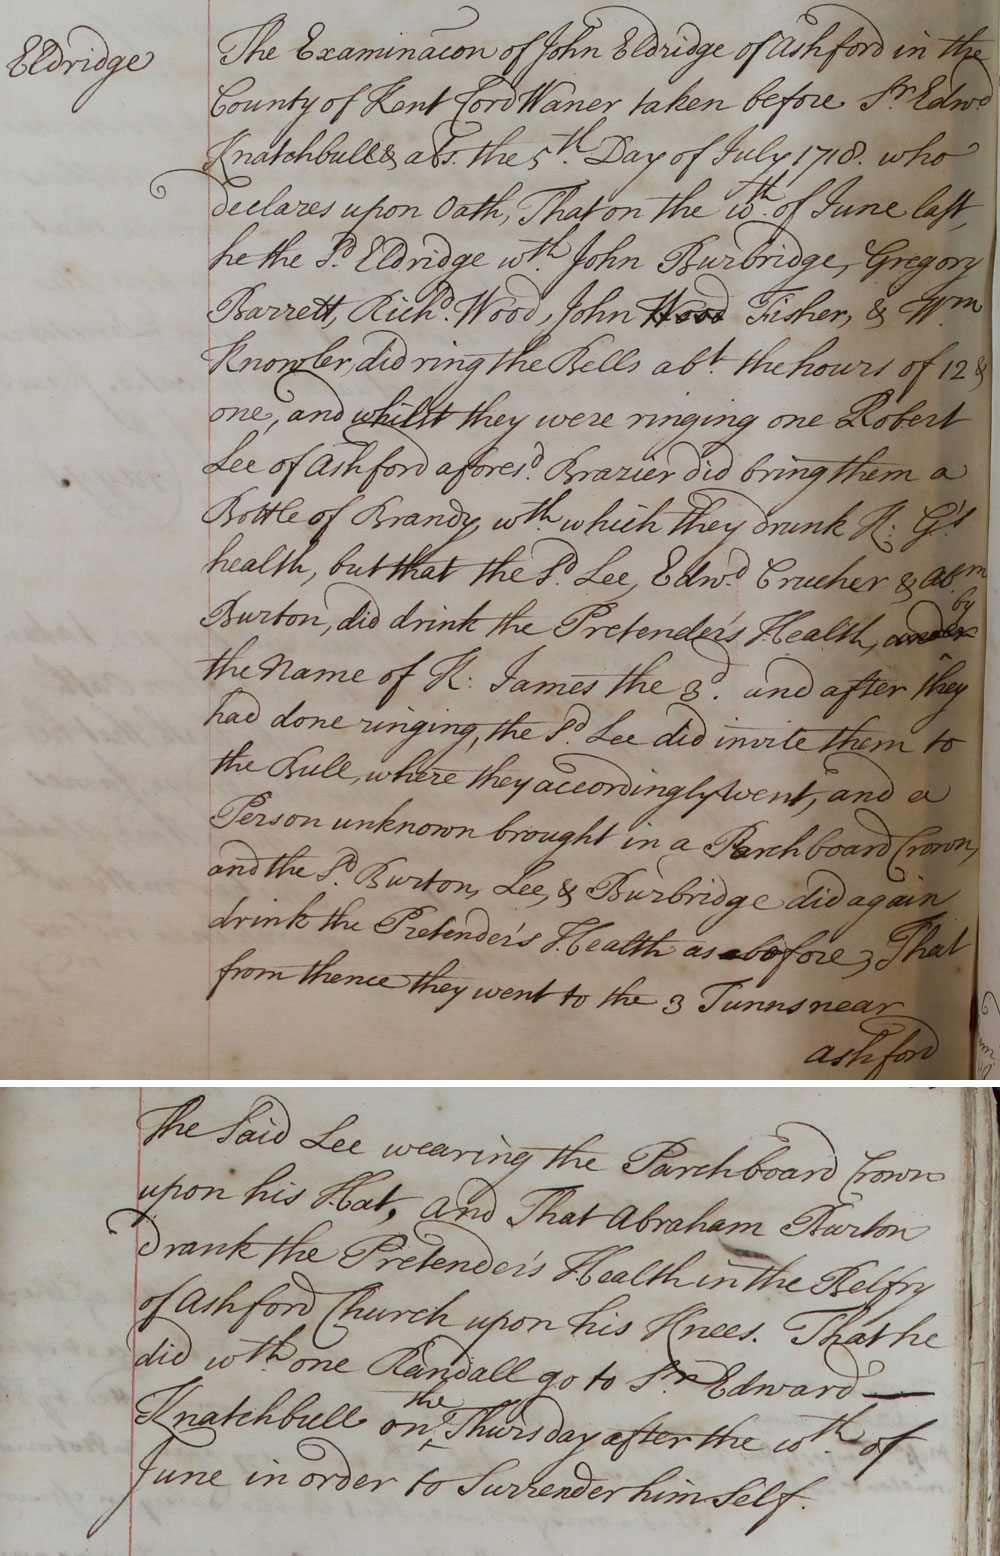 The examination of the case of John Eldridge in the county of Kent before Sir Edward Knatchbull, 5th July 1718 (SP 44/79A/f162-3)